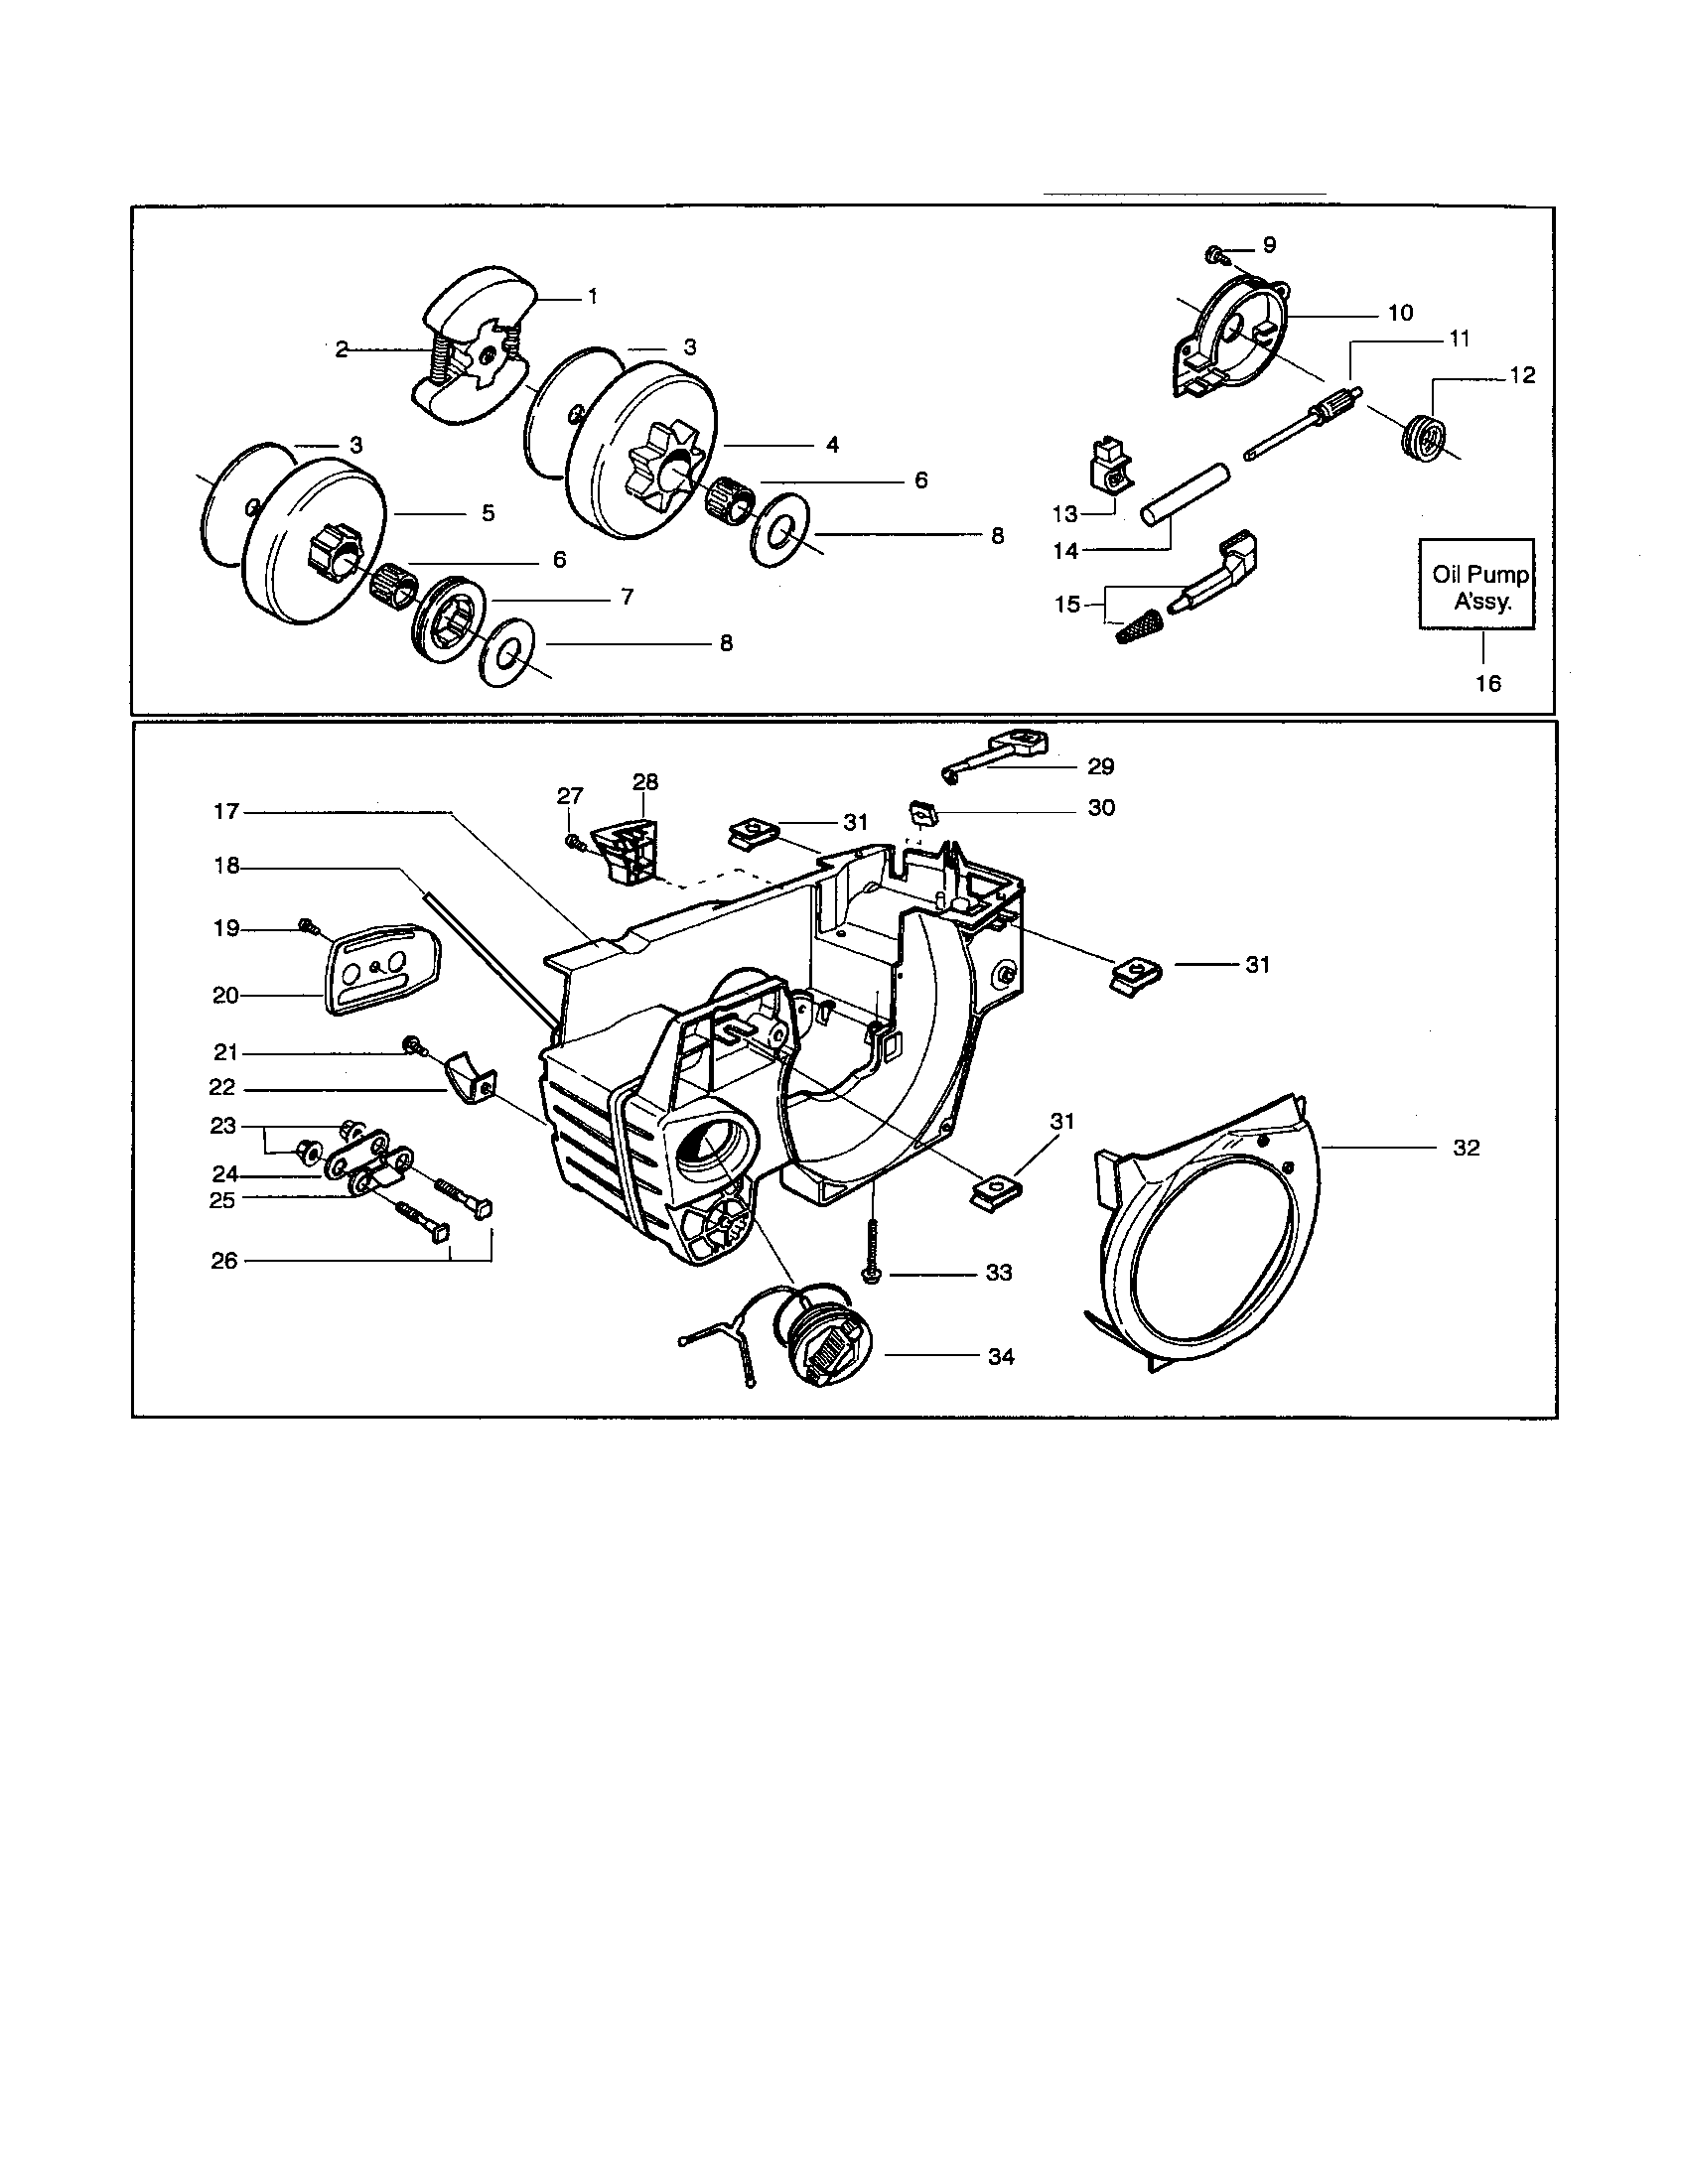 CLUTCH DRUM/CHASSIS Diagram & Parts List for Model 136